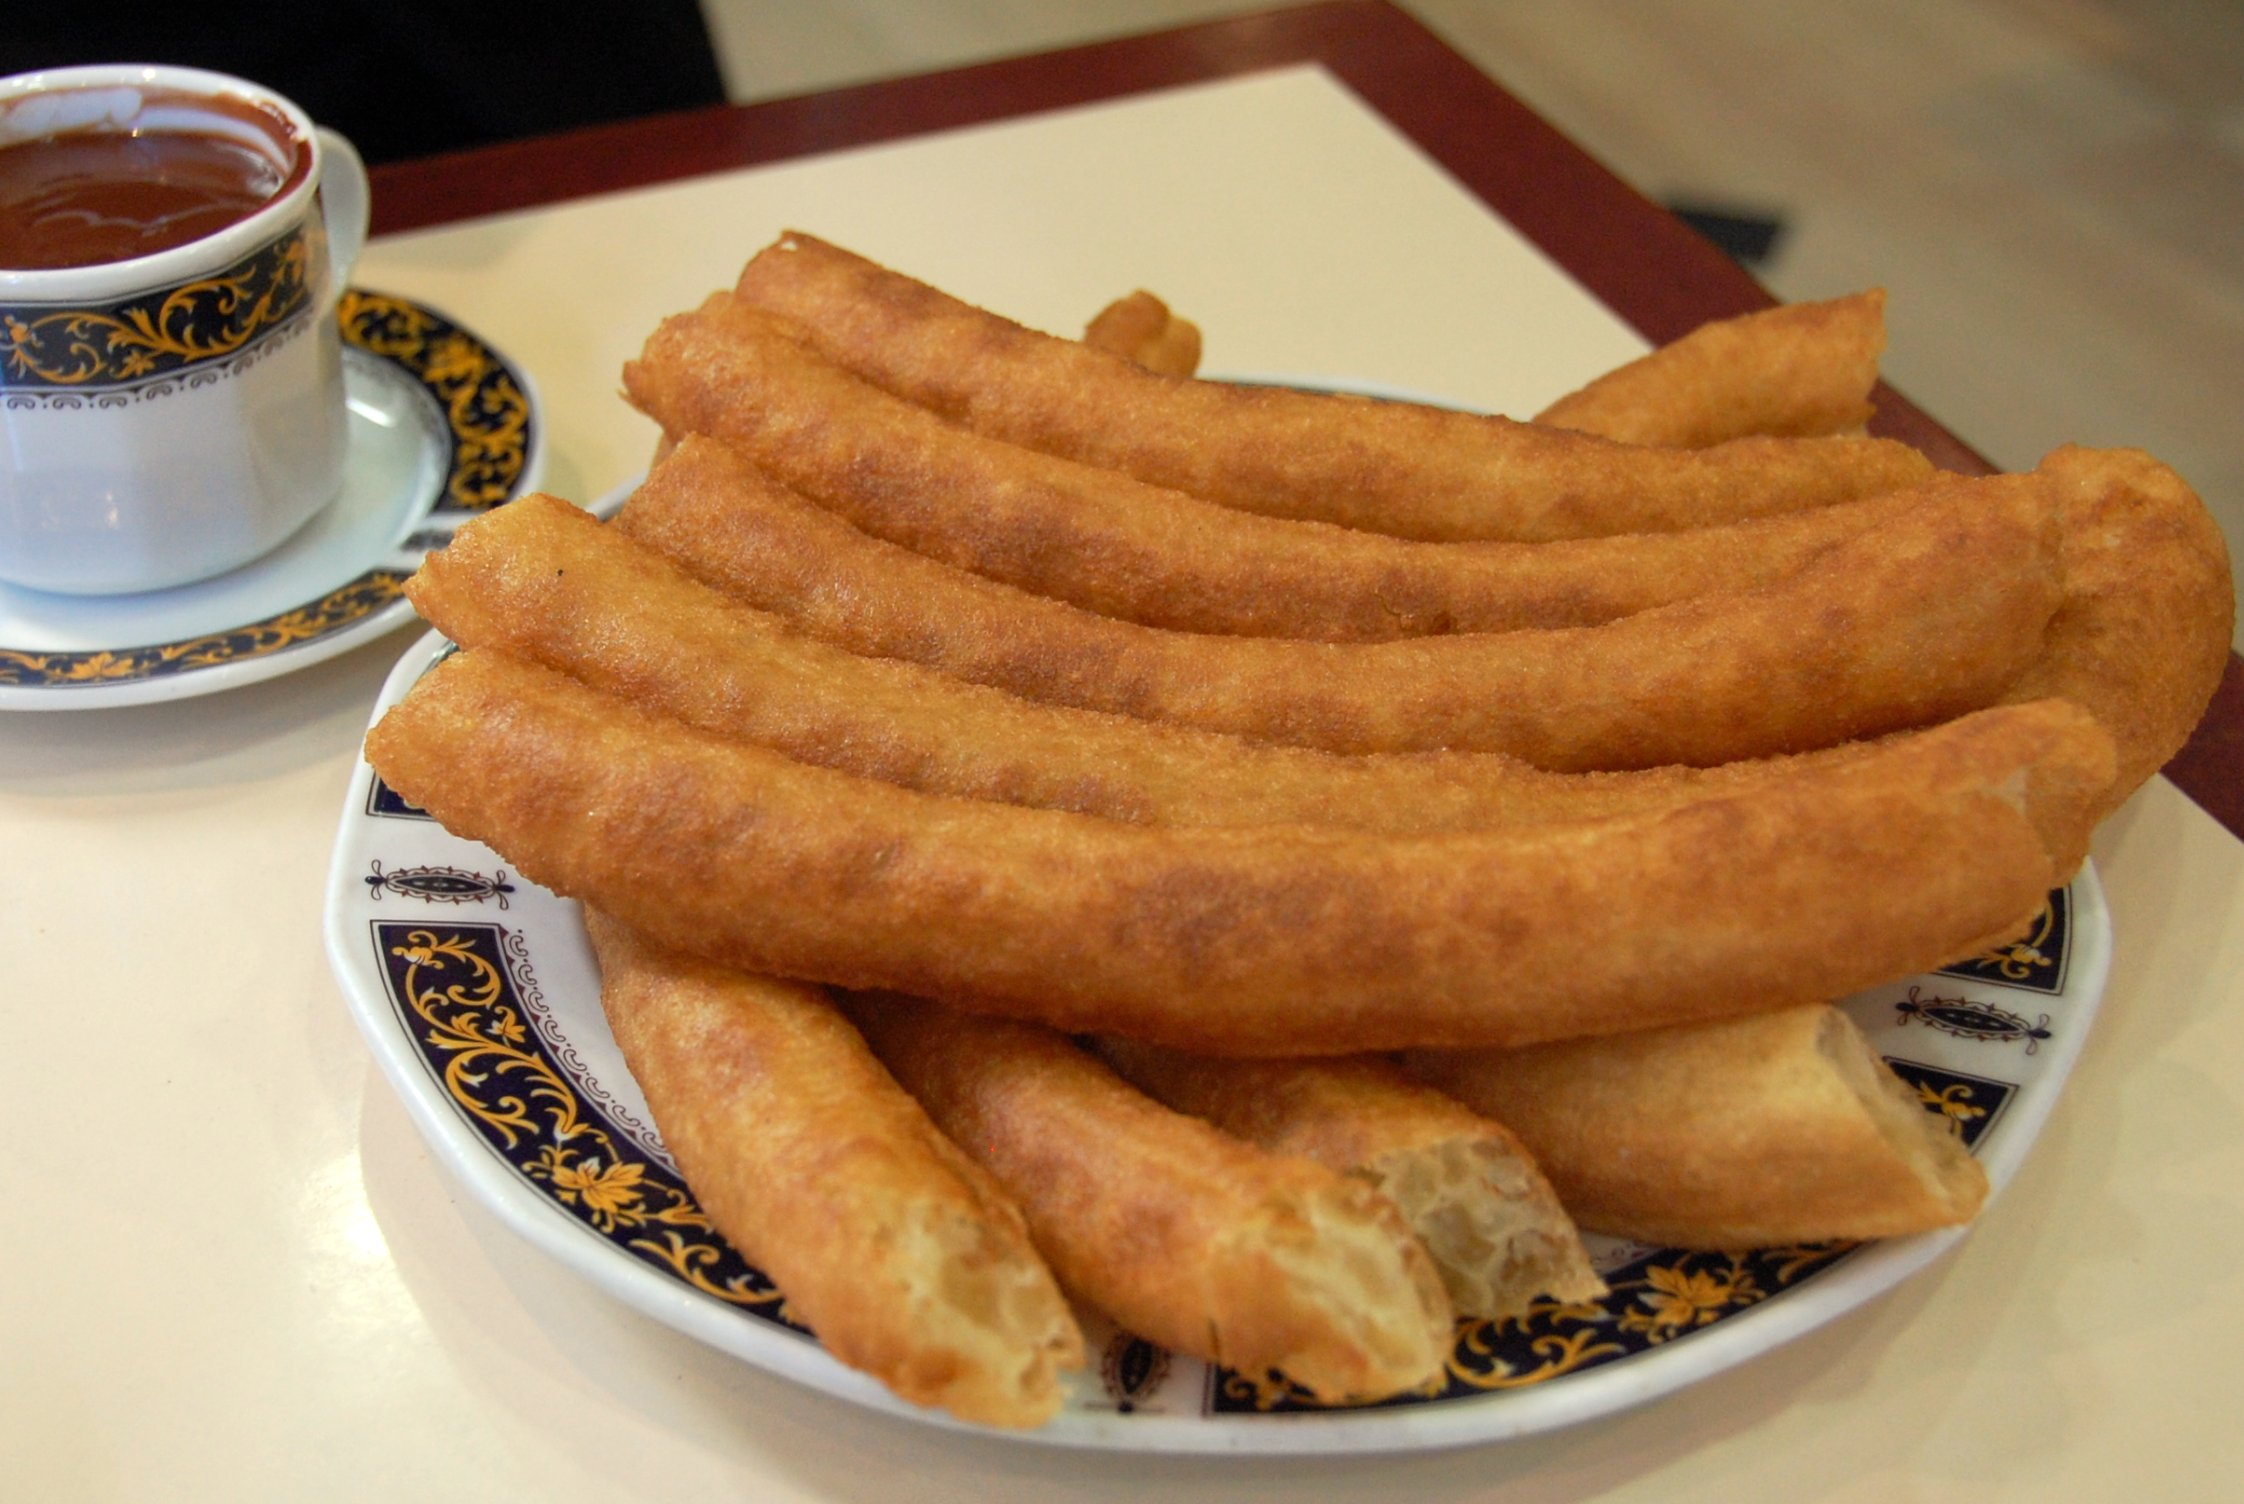 File:Churros y chocolate en Granada.jpg - Wikimedia Commons